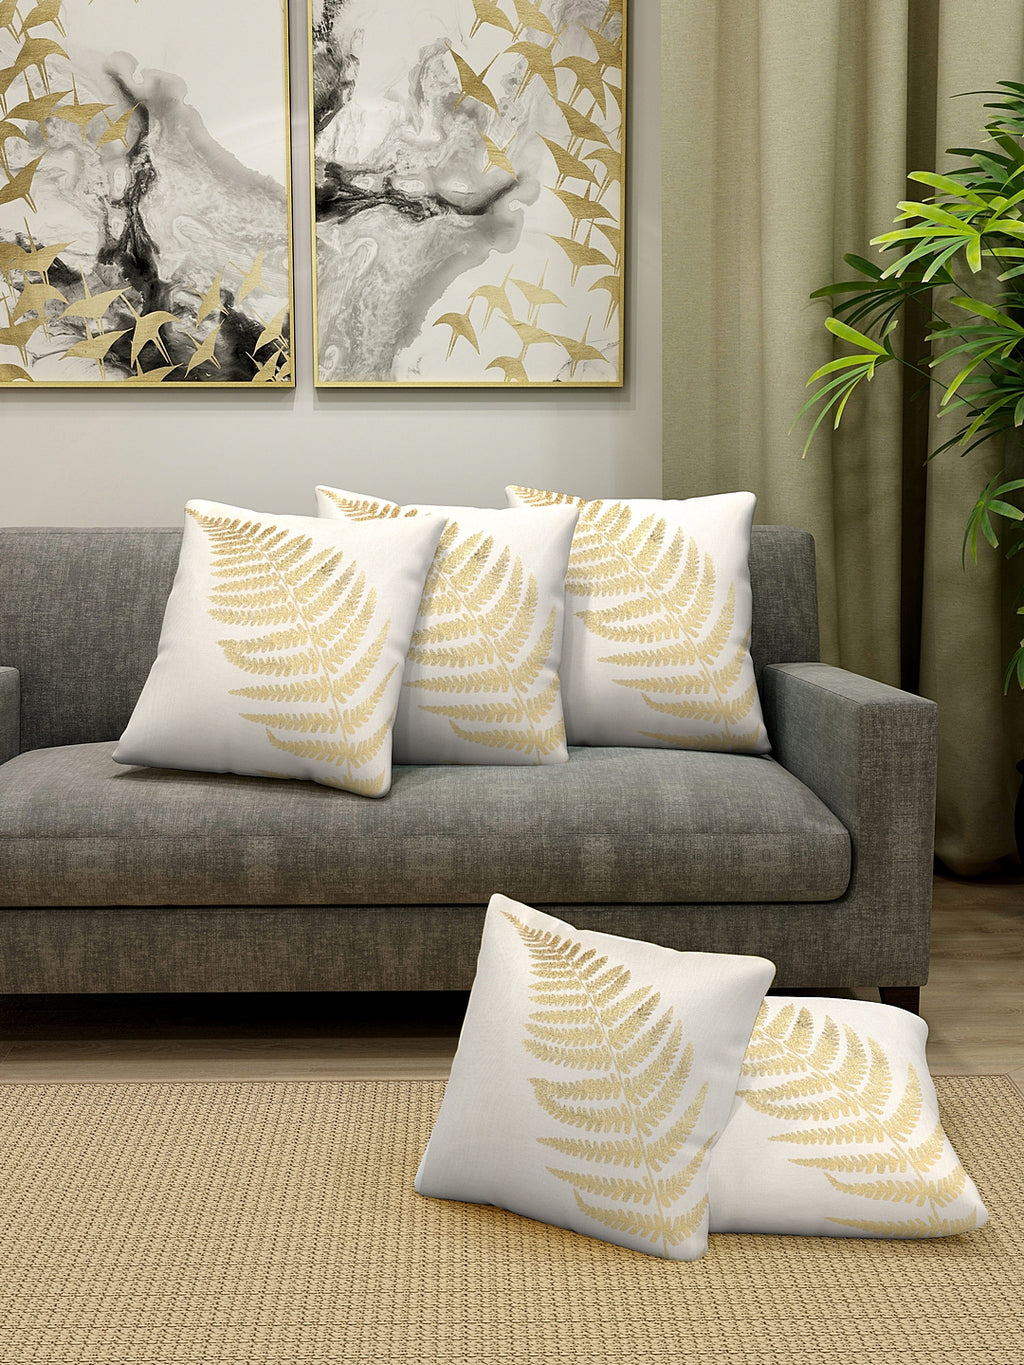 Detec™ Hosta Beige Golden Foil Printed 16 x 16 inches Cushion Cover (Set of 5 )